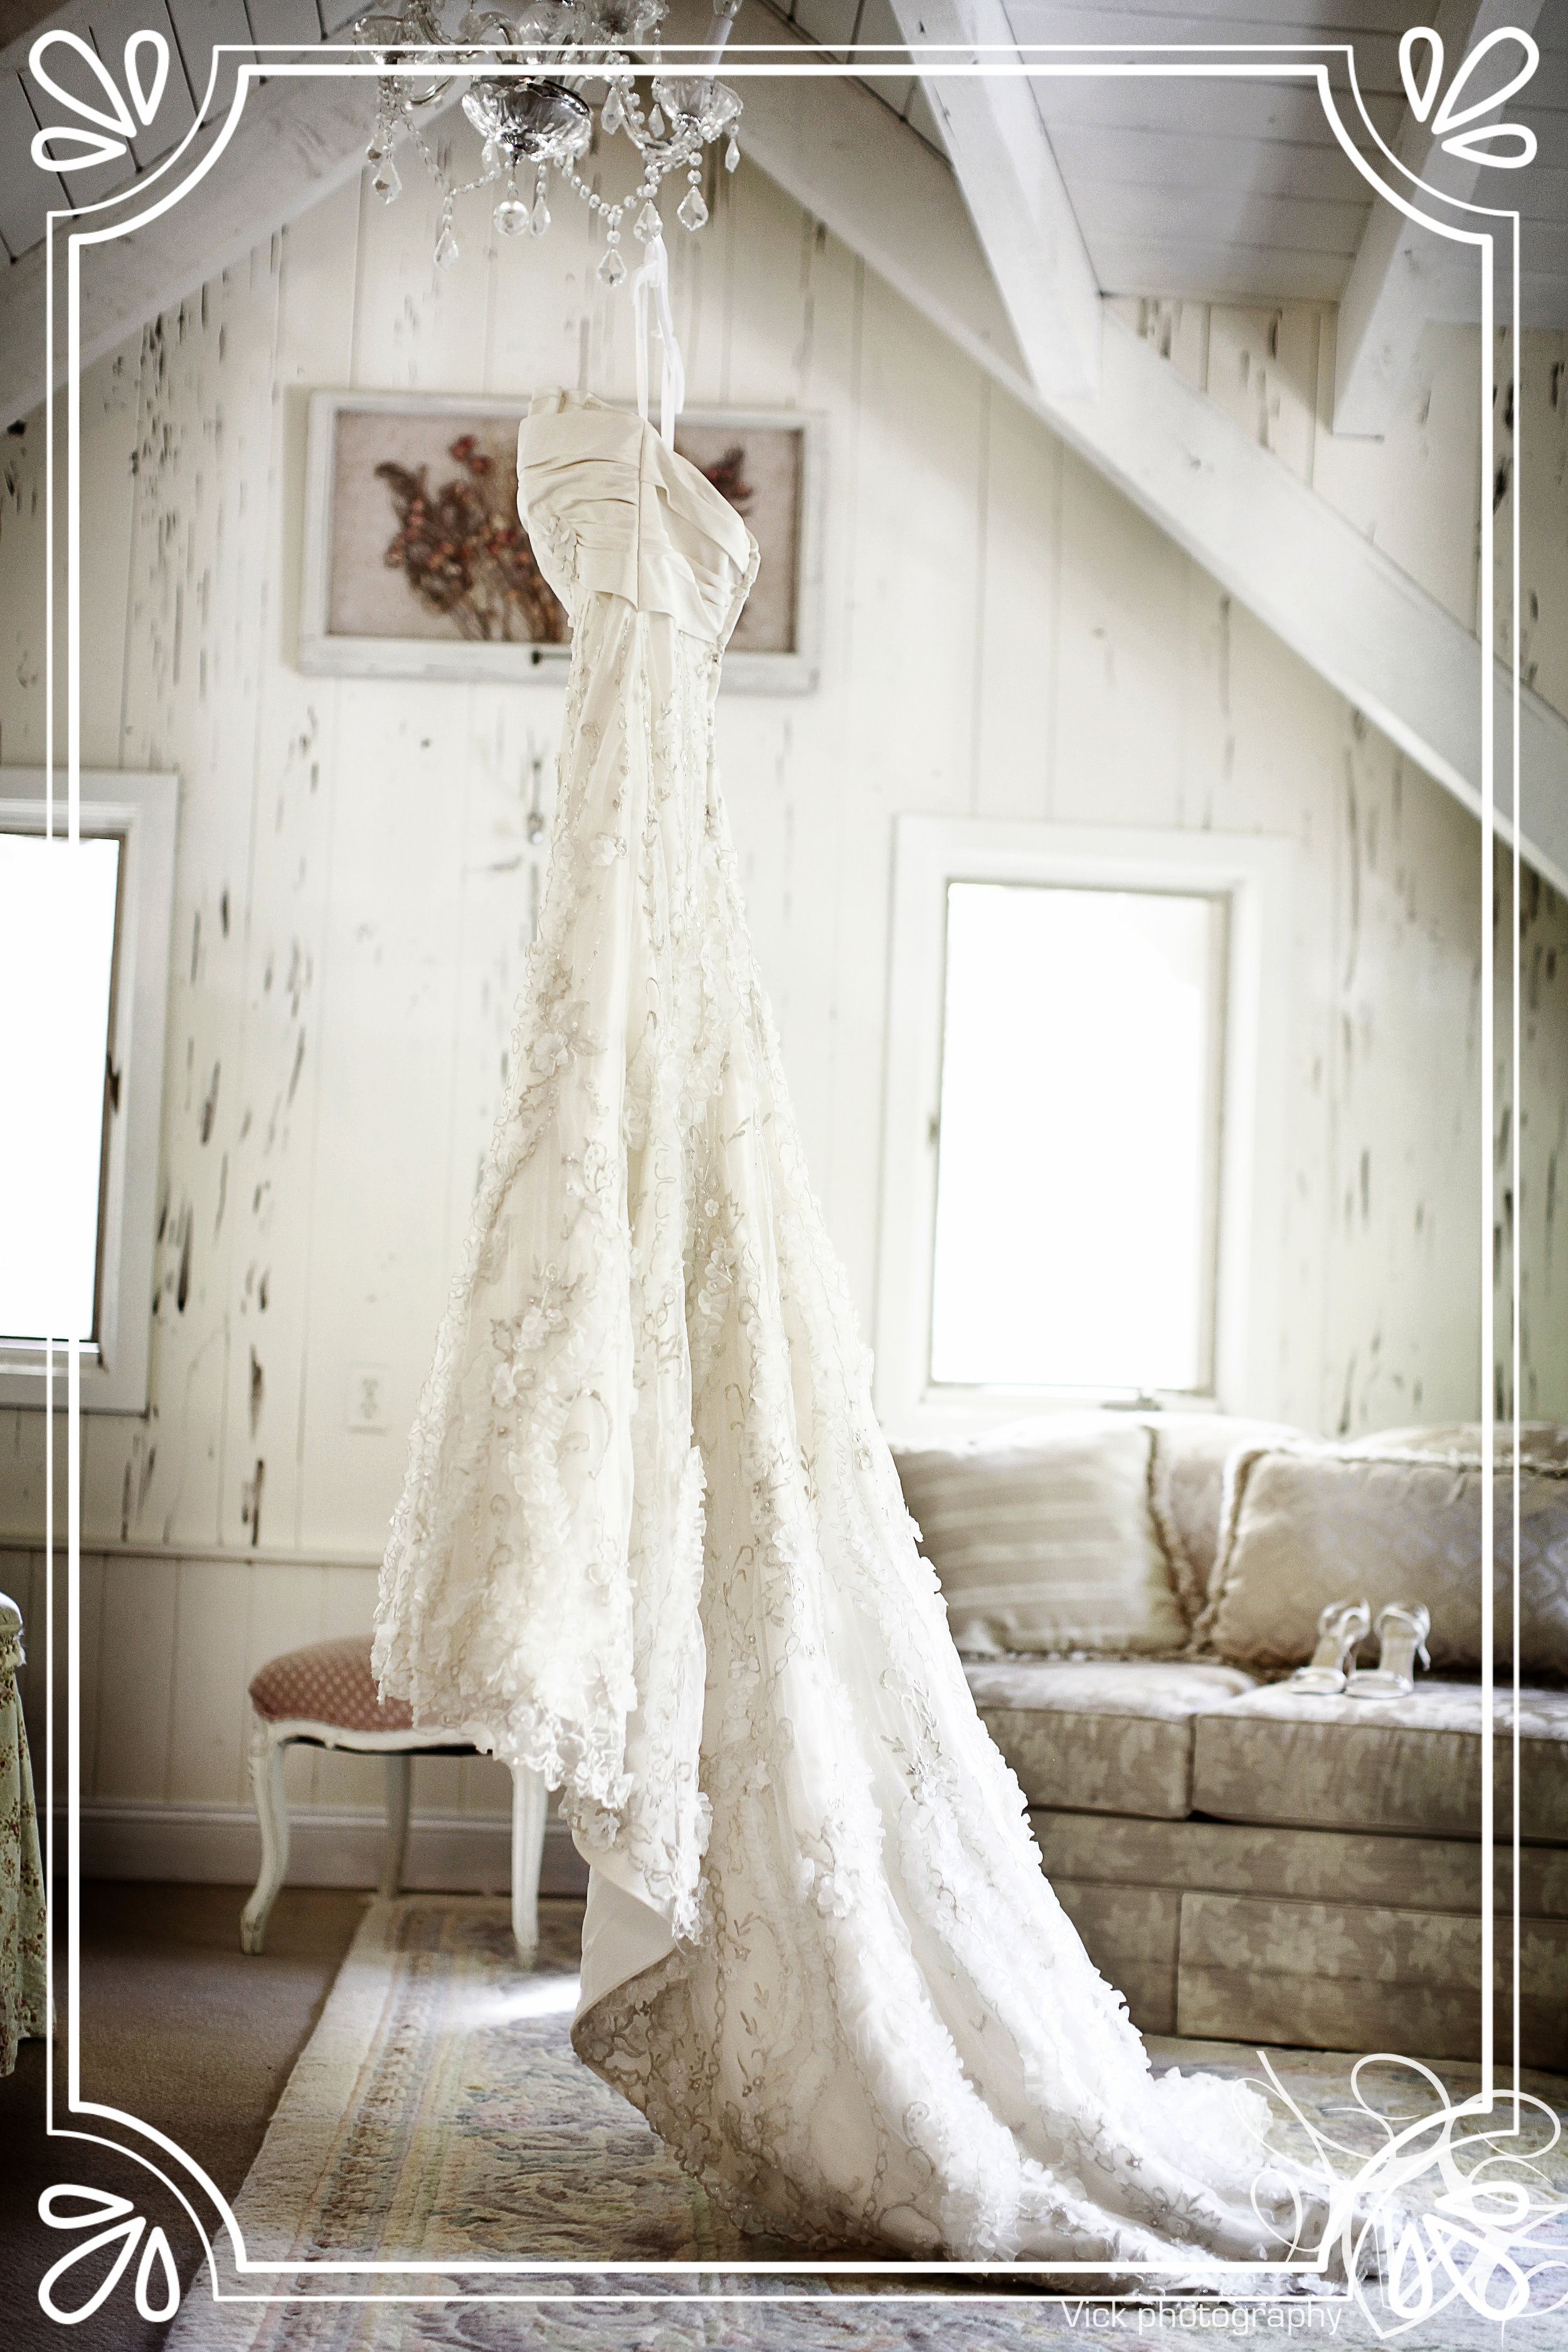 Bridal suite and wedding gown